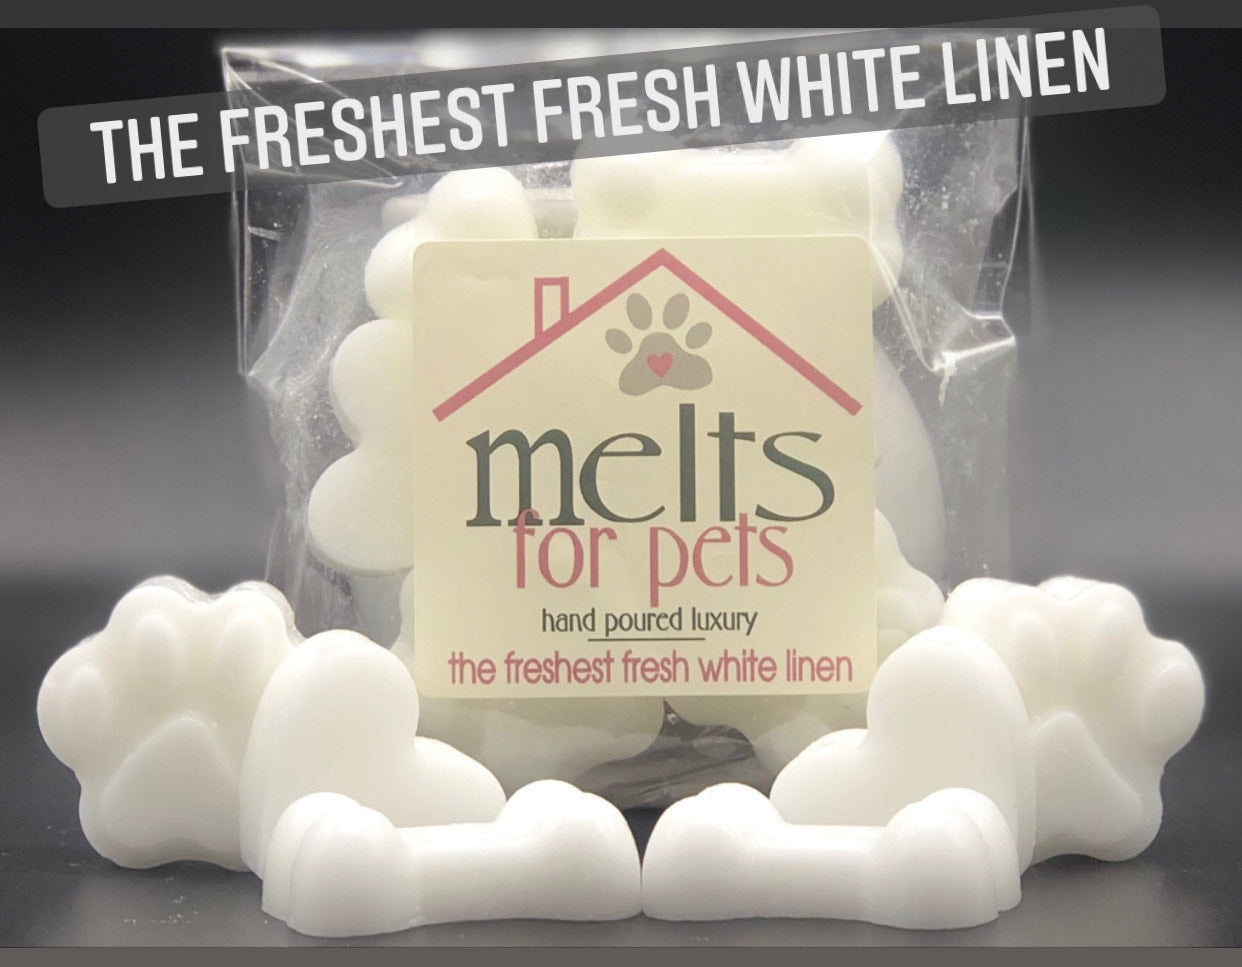 the freshest fresh white linen, luxury pet friendly wax melts - pack of 6!